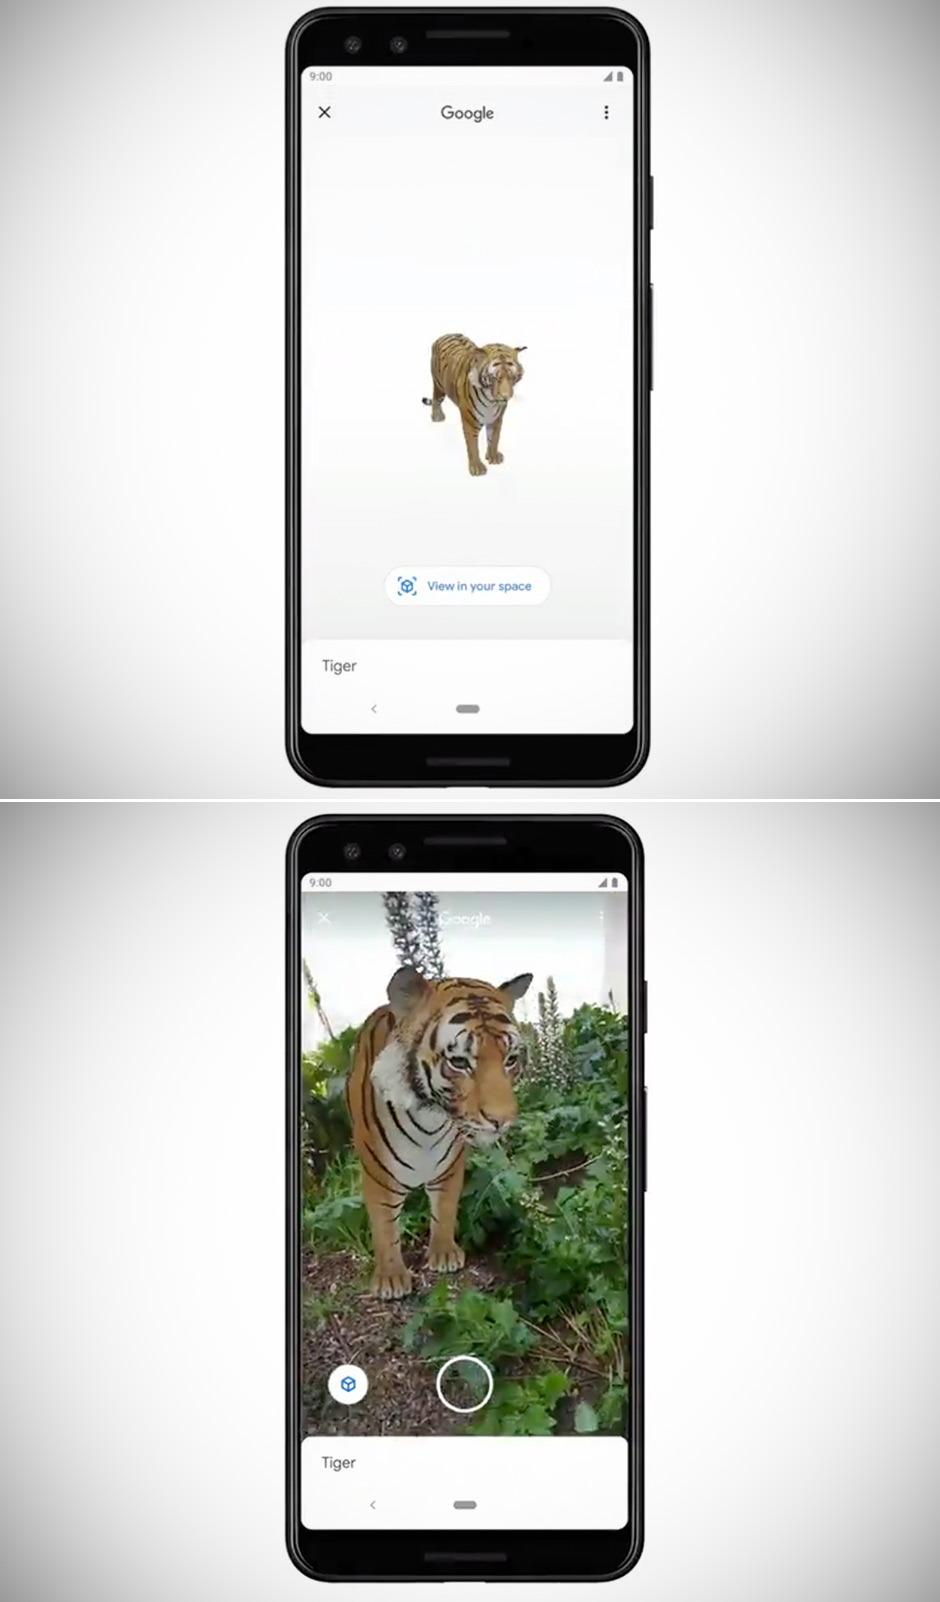 Google Search App Augmented Reality Animals